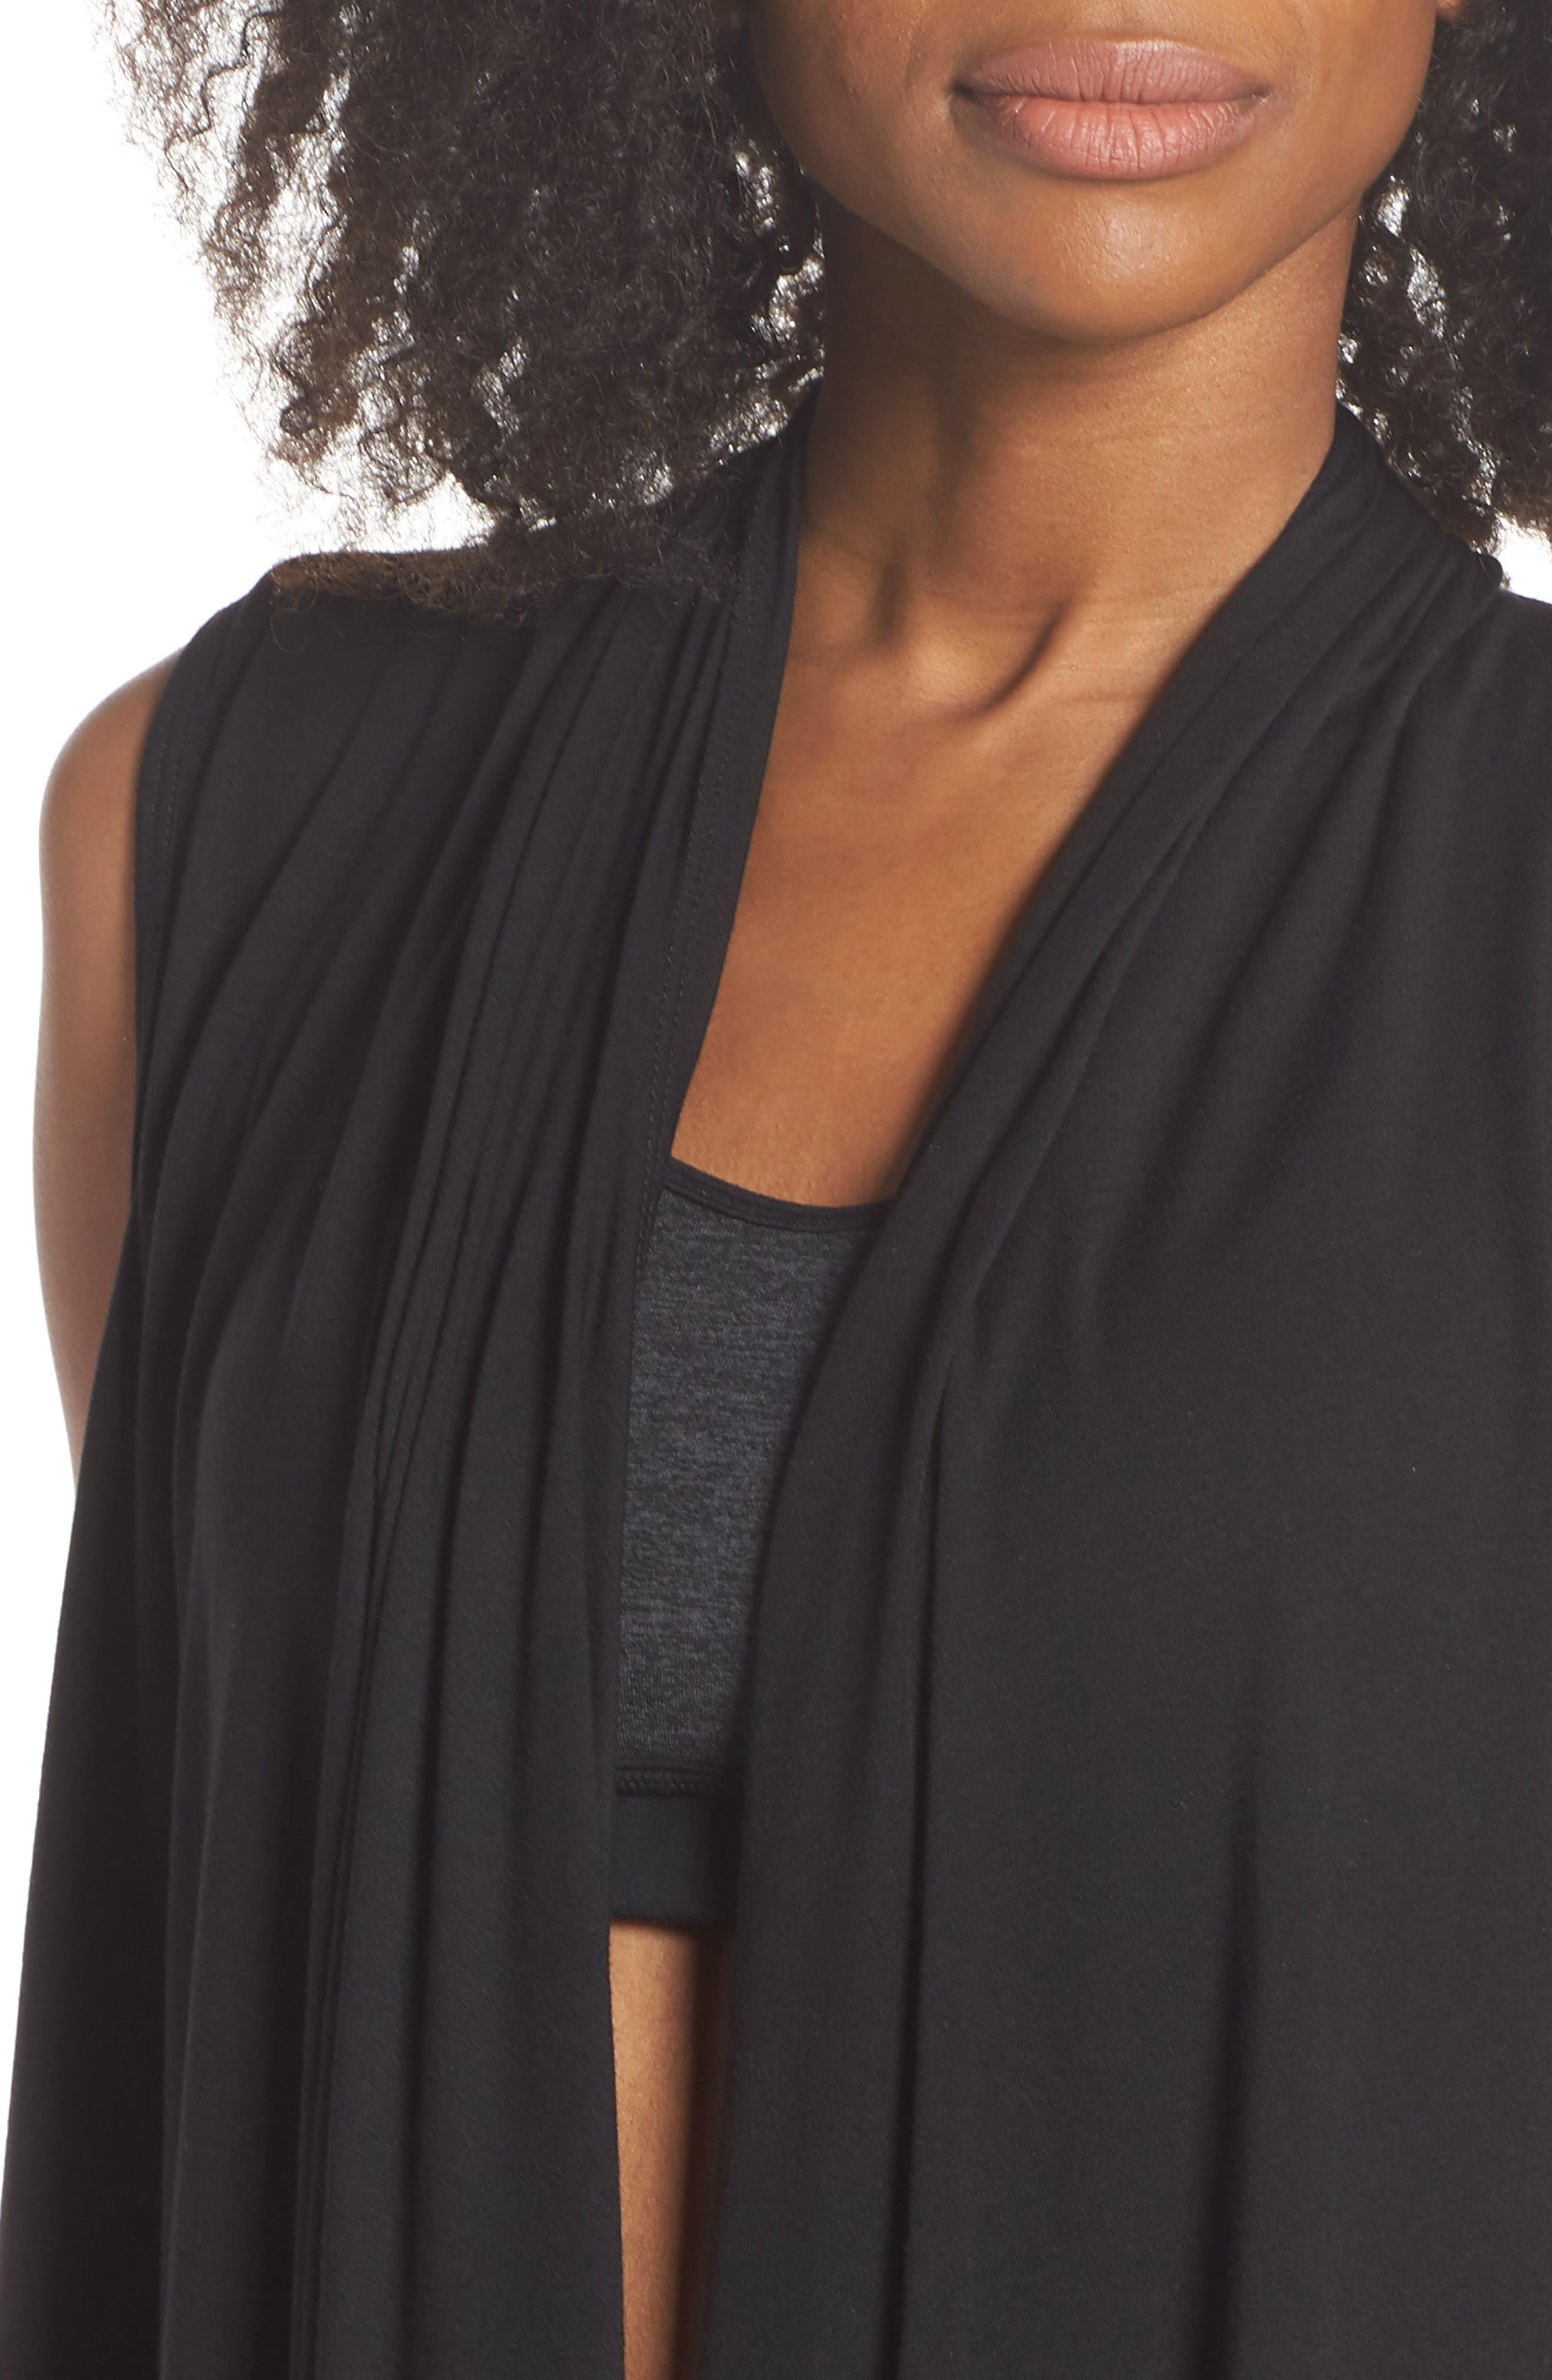 Sleeveless Cardigan,                             Alternate thumbnail 4, color,                             BLACK